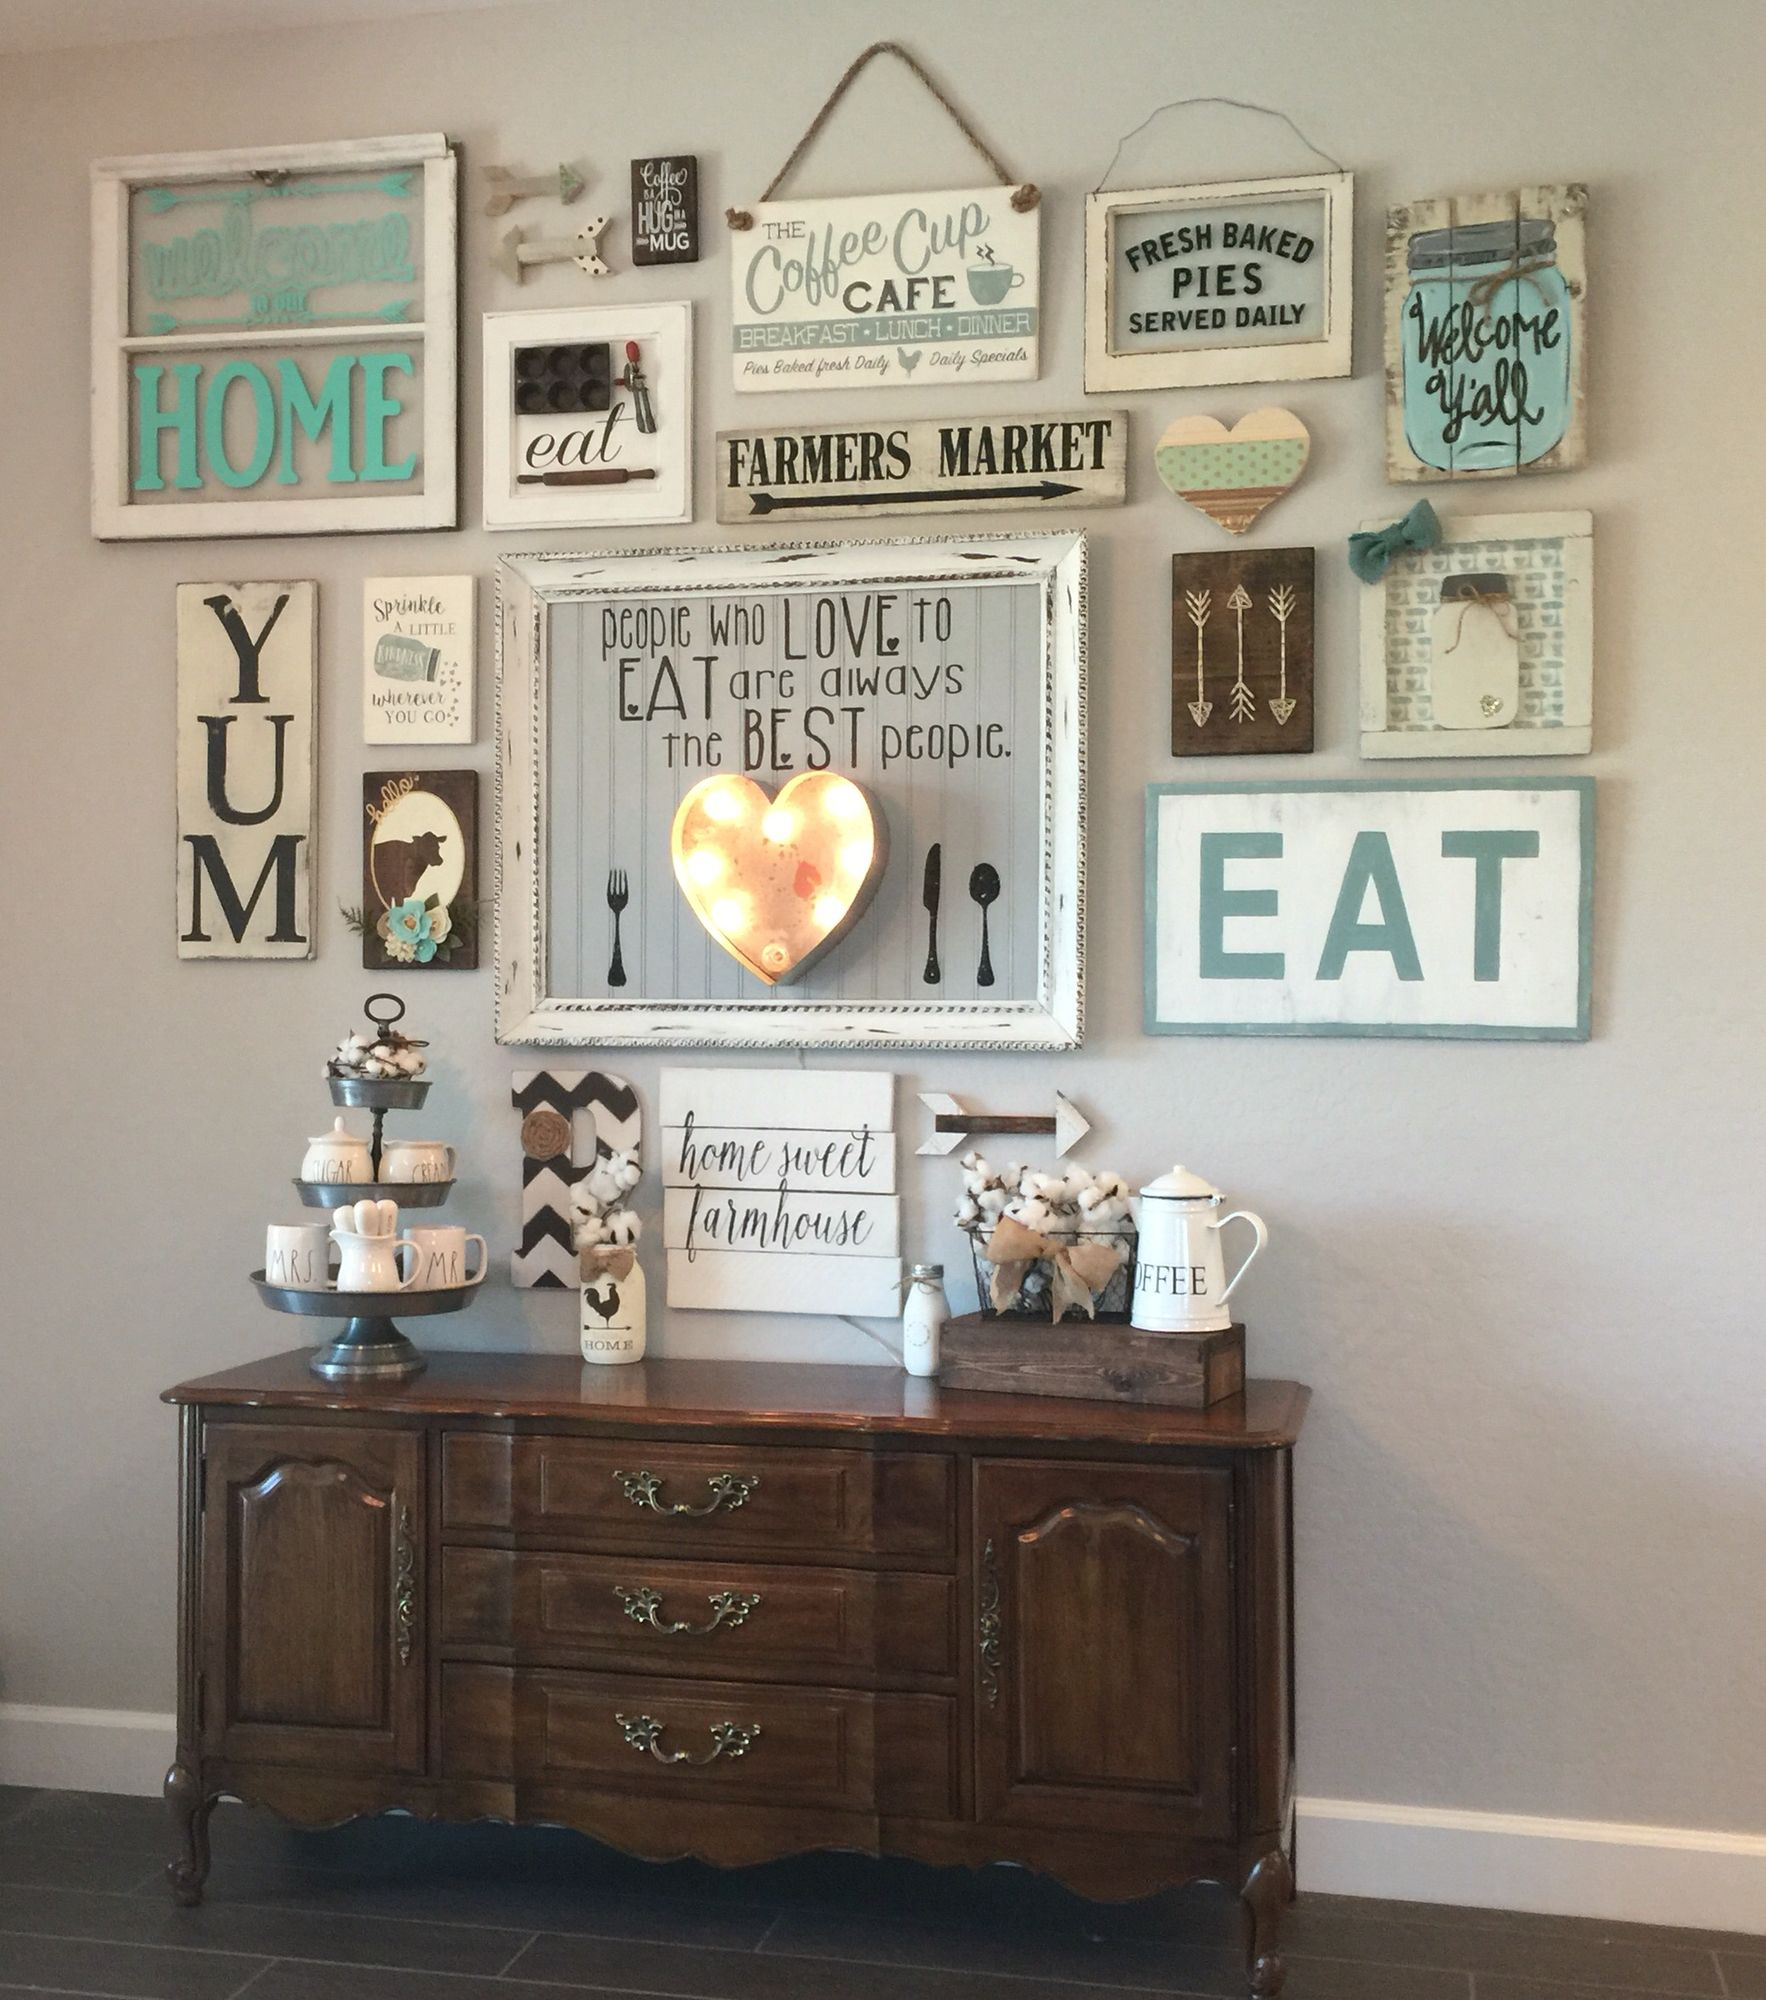 Pictures For Kitchen Wall Rooster Rugs The My Gallery In Our I M Colewifey On Ig Come Follow Me And See How Continue To Decorate New Home